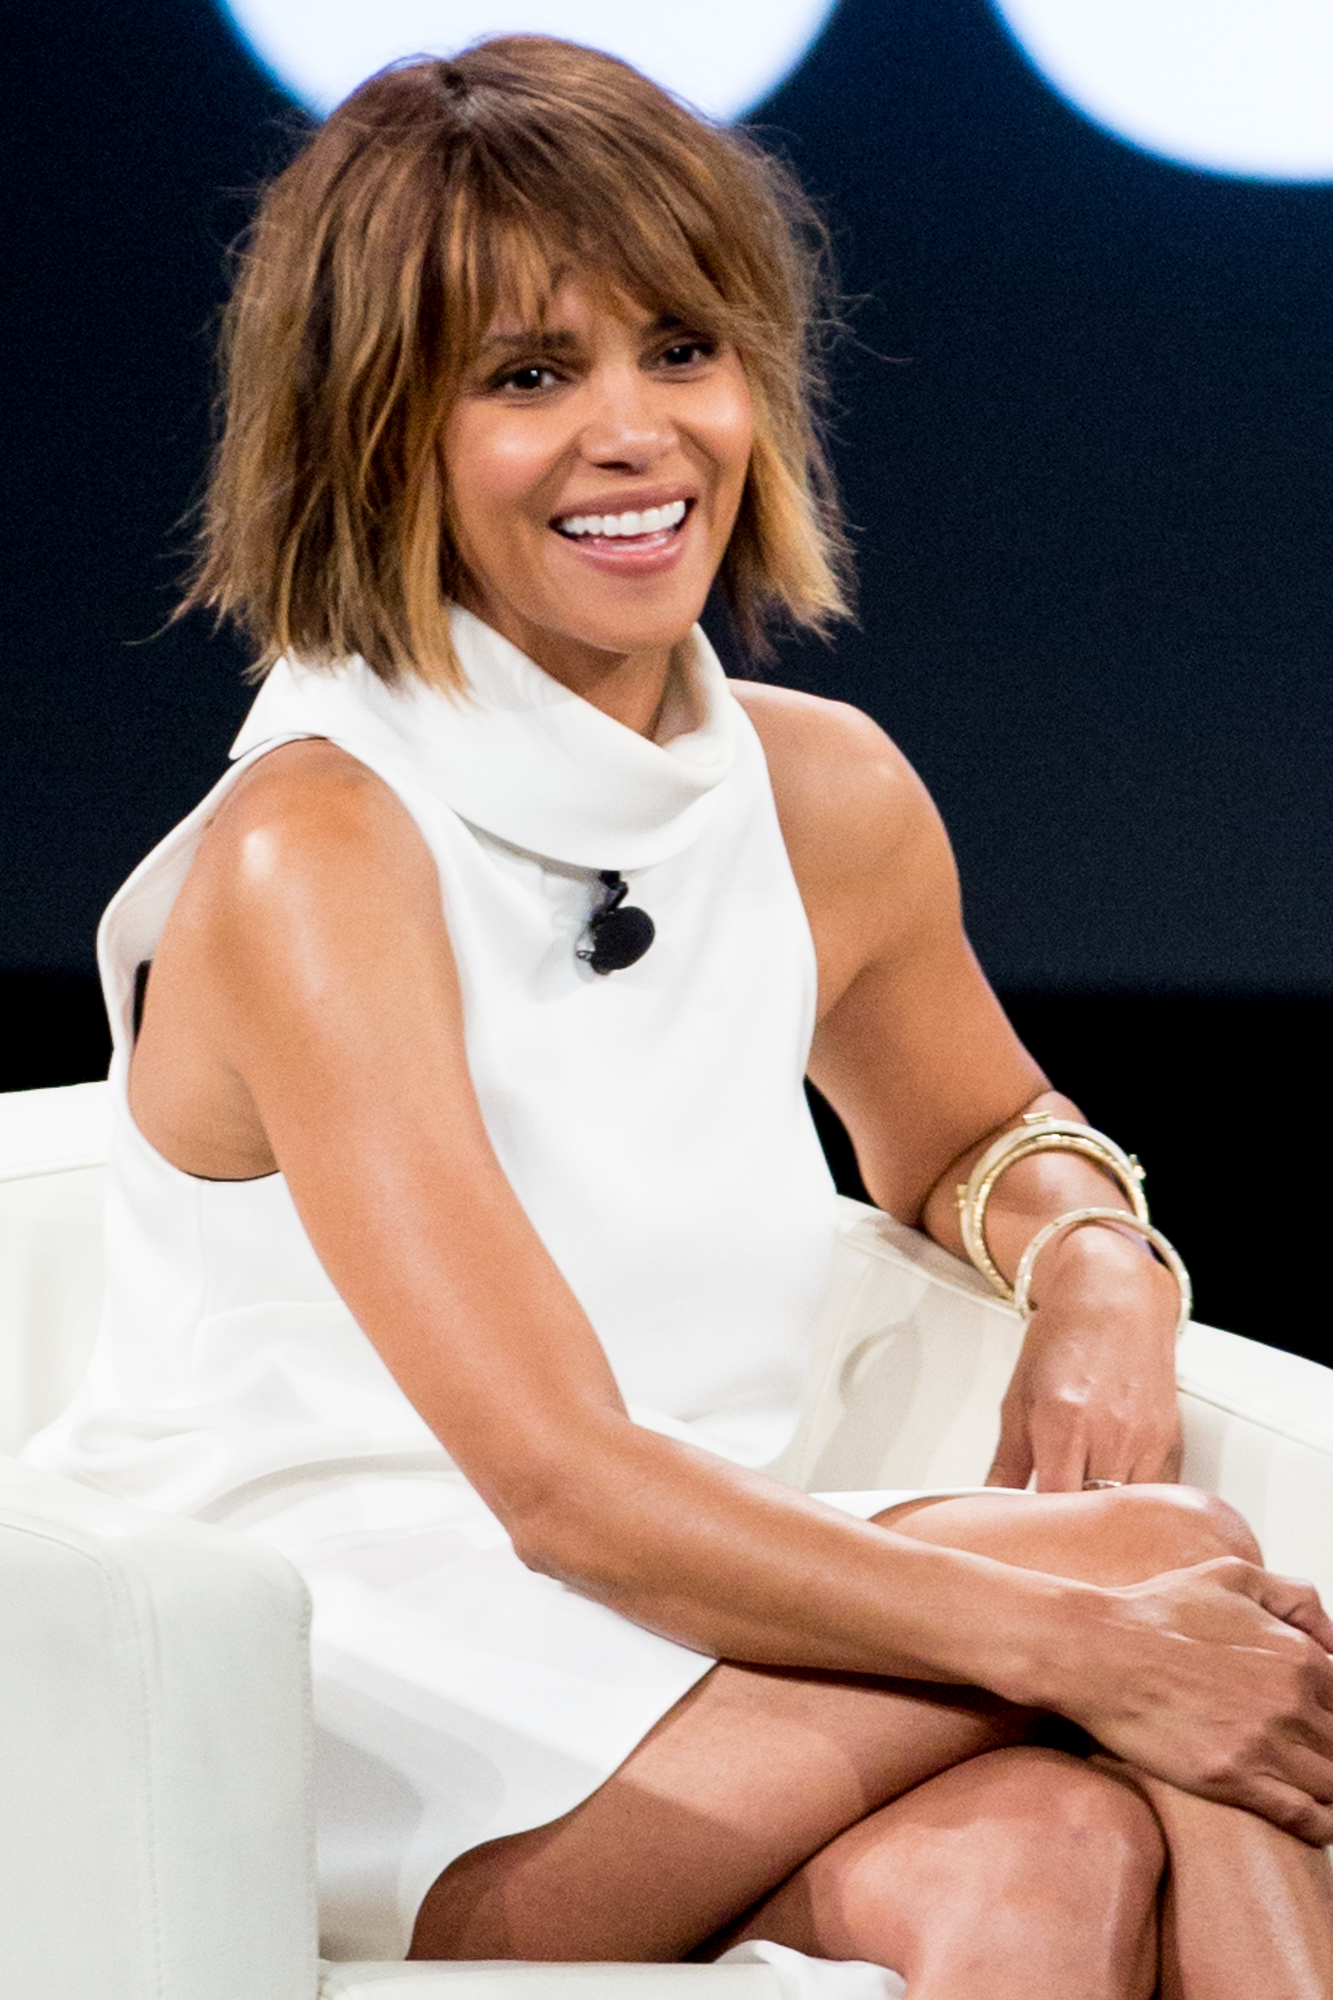 9news.com | Halle Berry goes au naturel in first Instagram ... Halle Berry Instagram